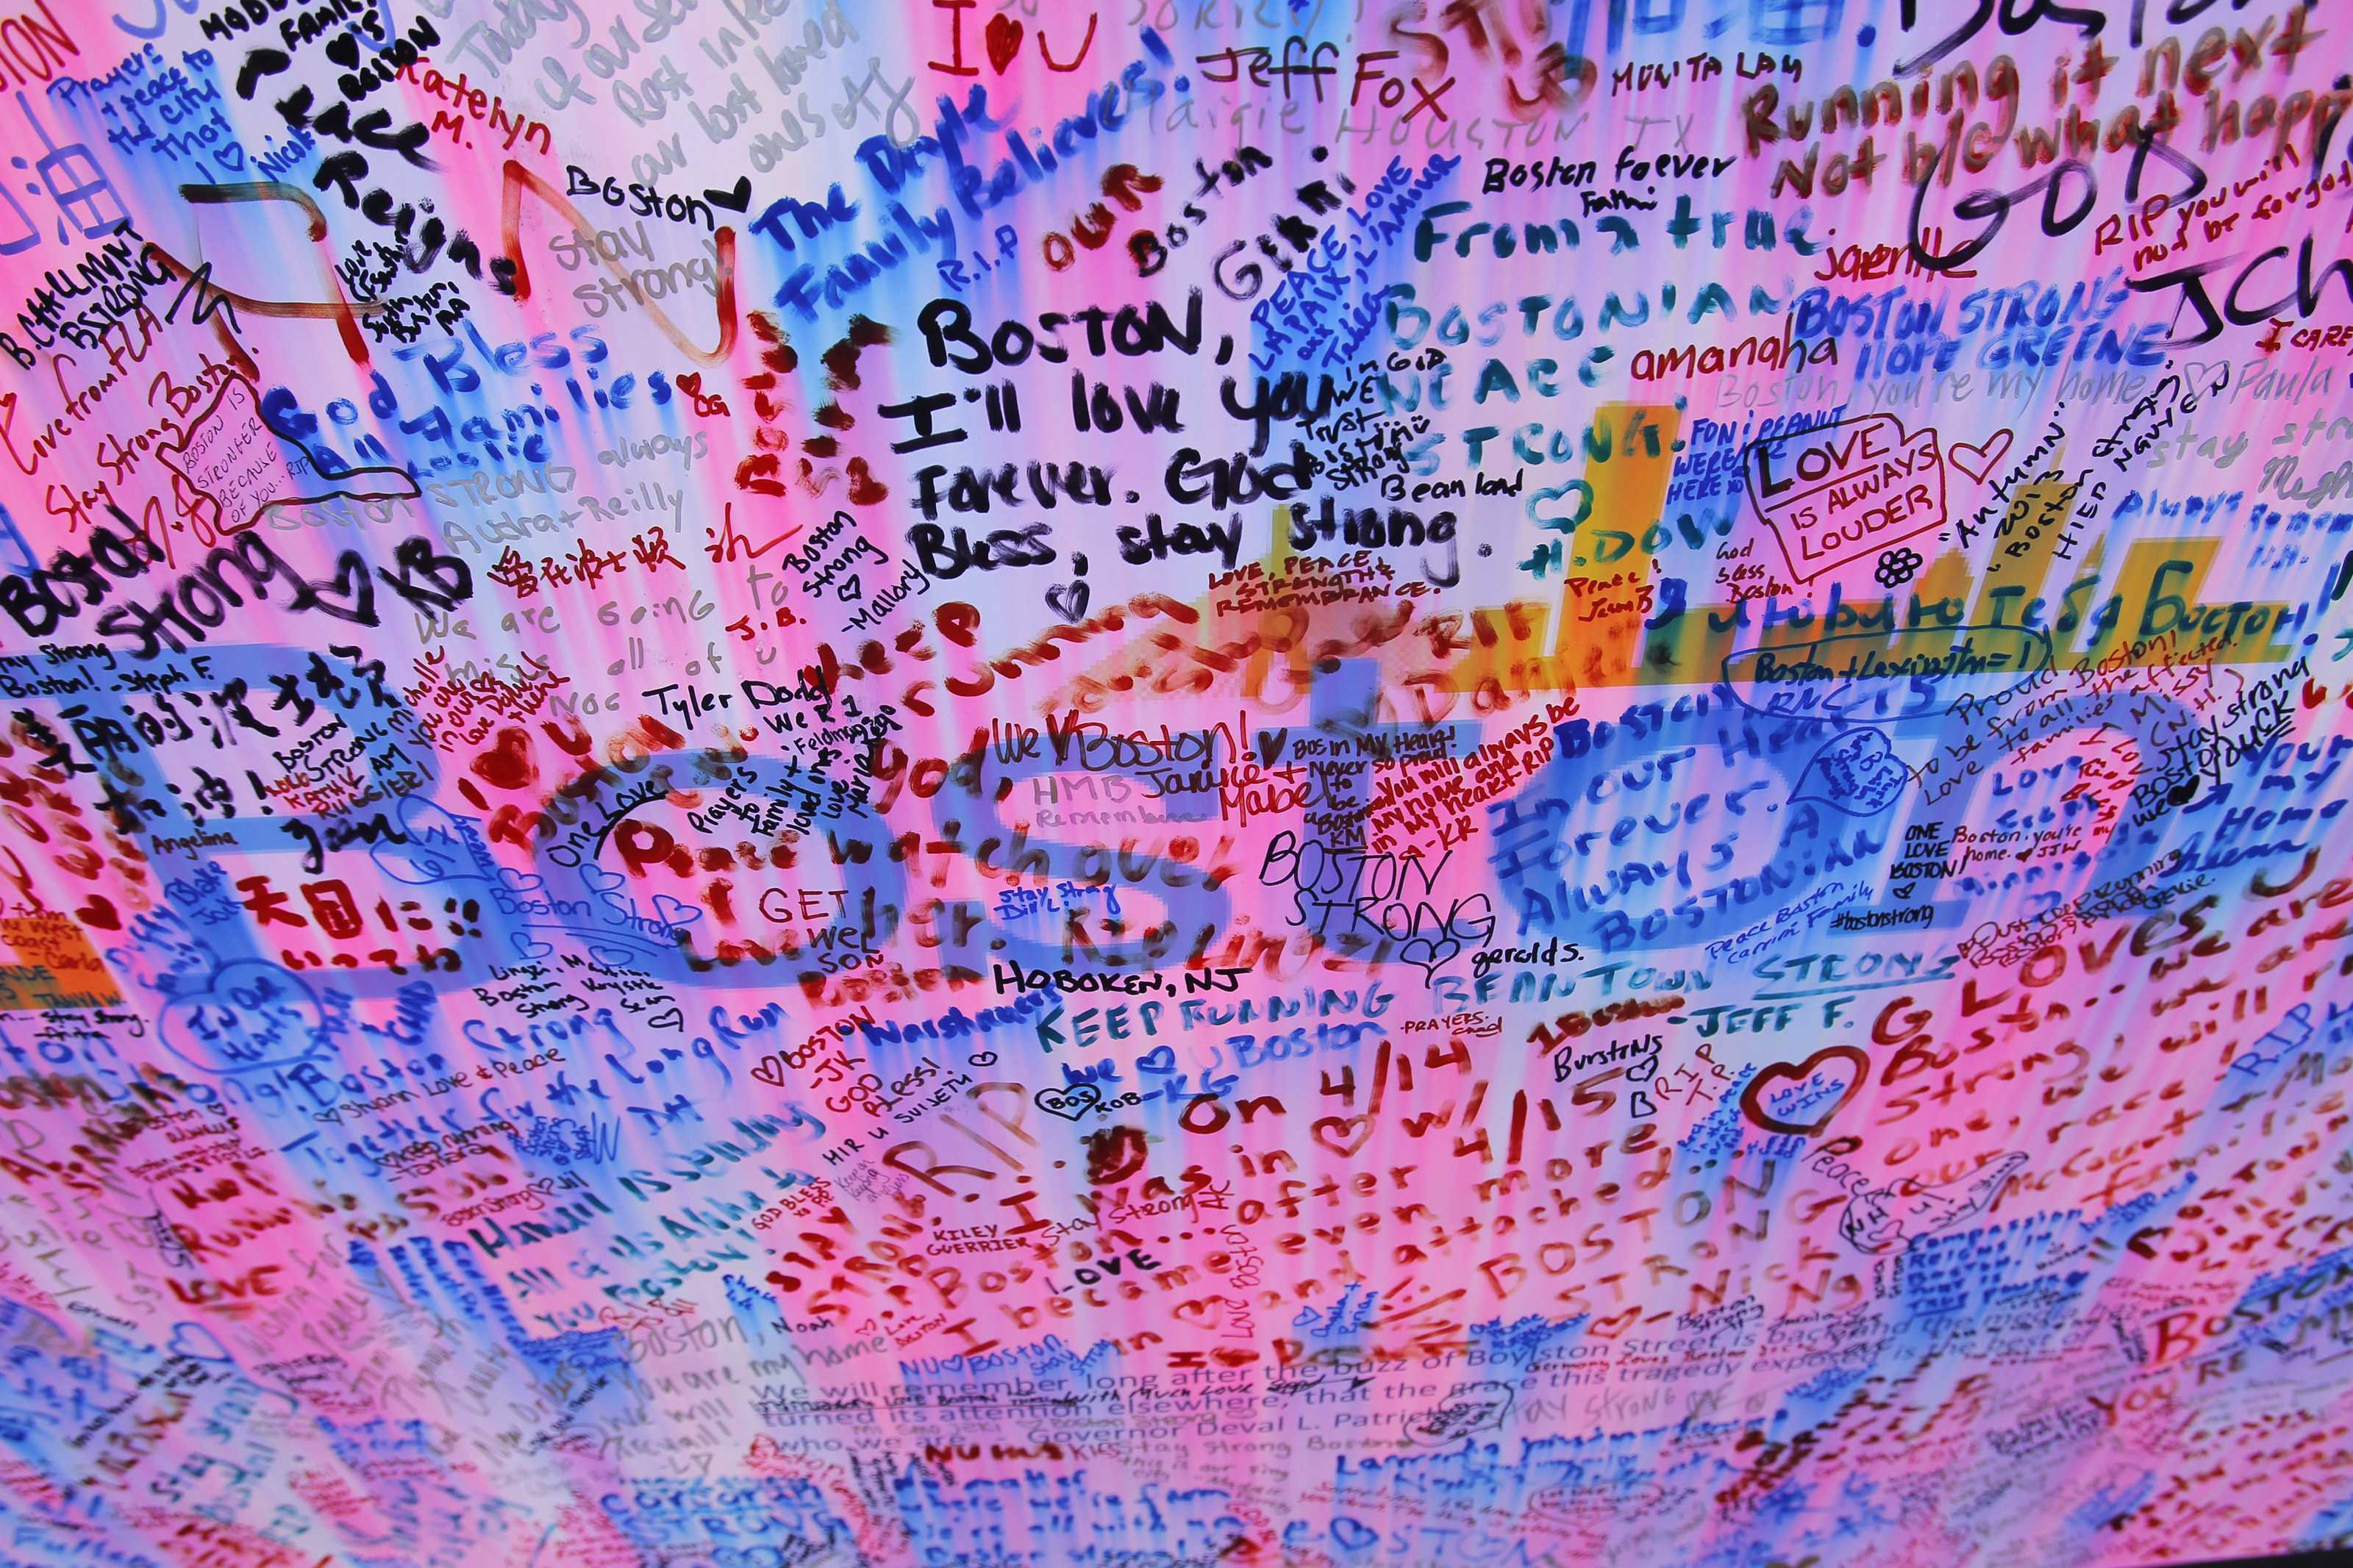 Boston's Marathon memorial: How much should we save? - The